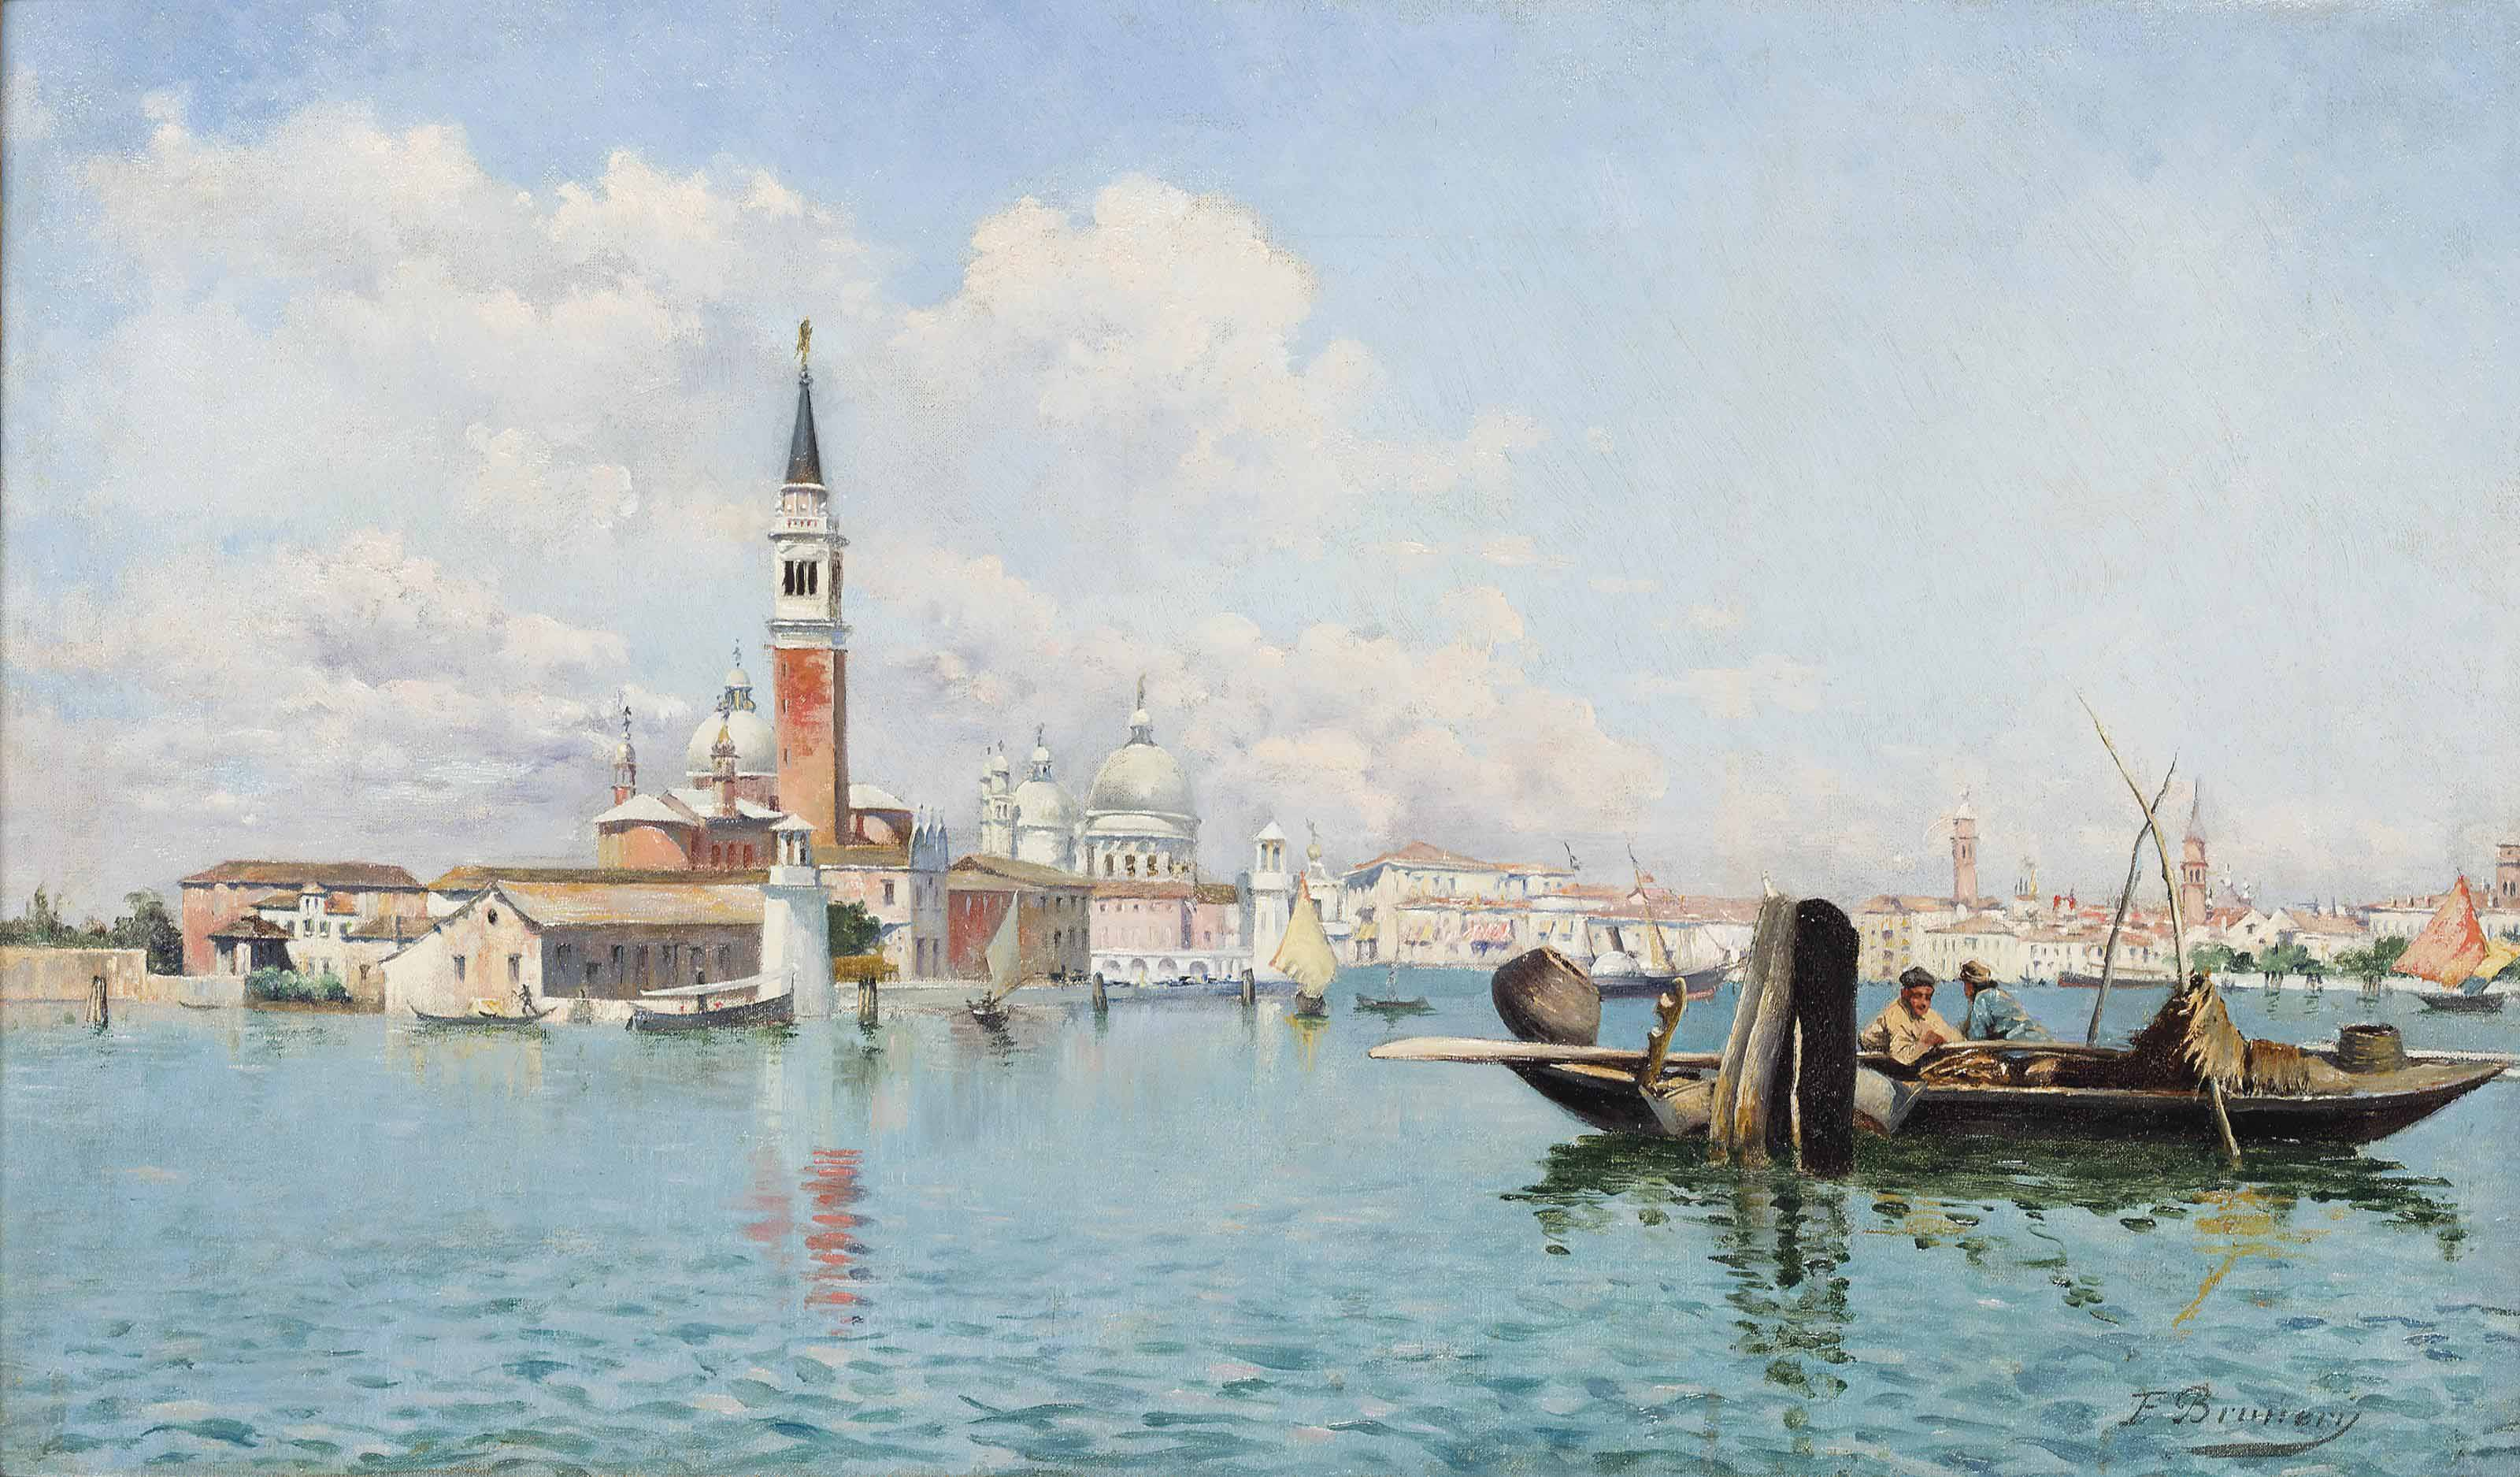 Fishing on the Venetian lagoon